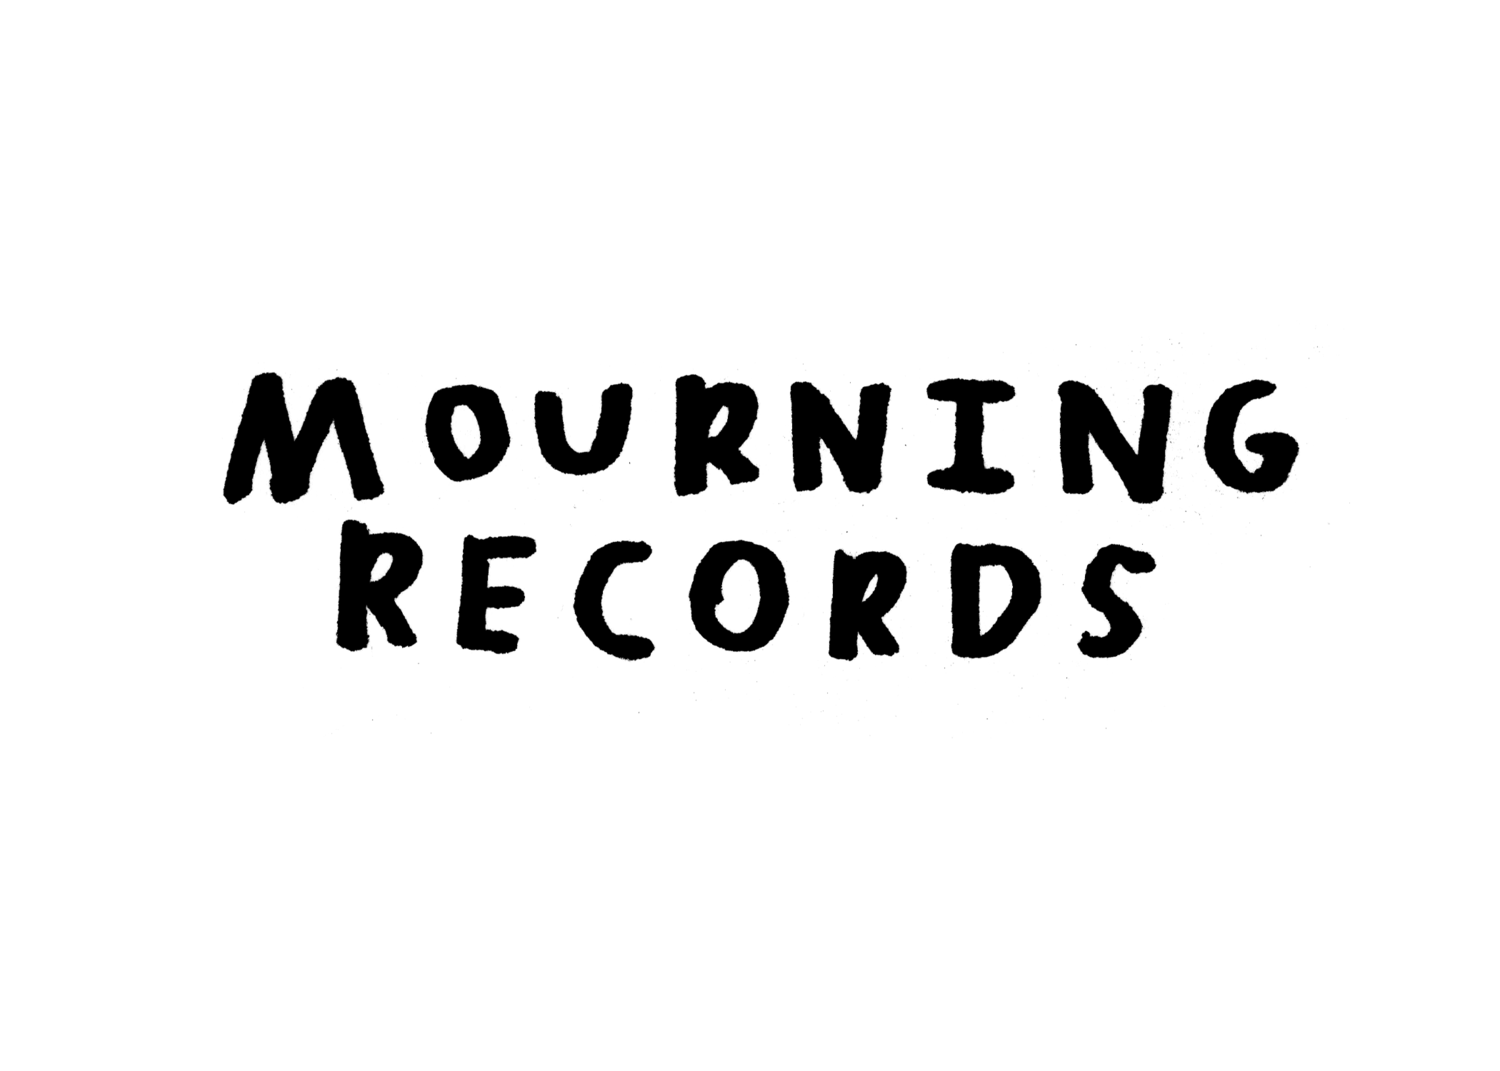 Mourning Records